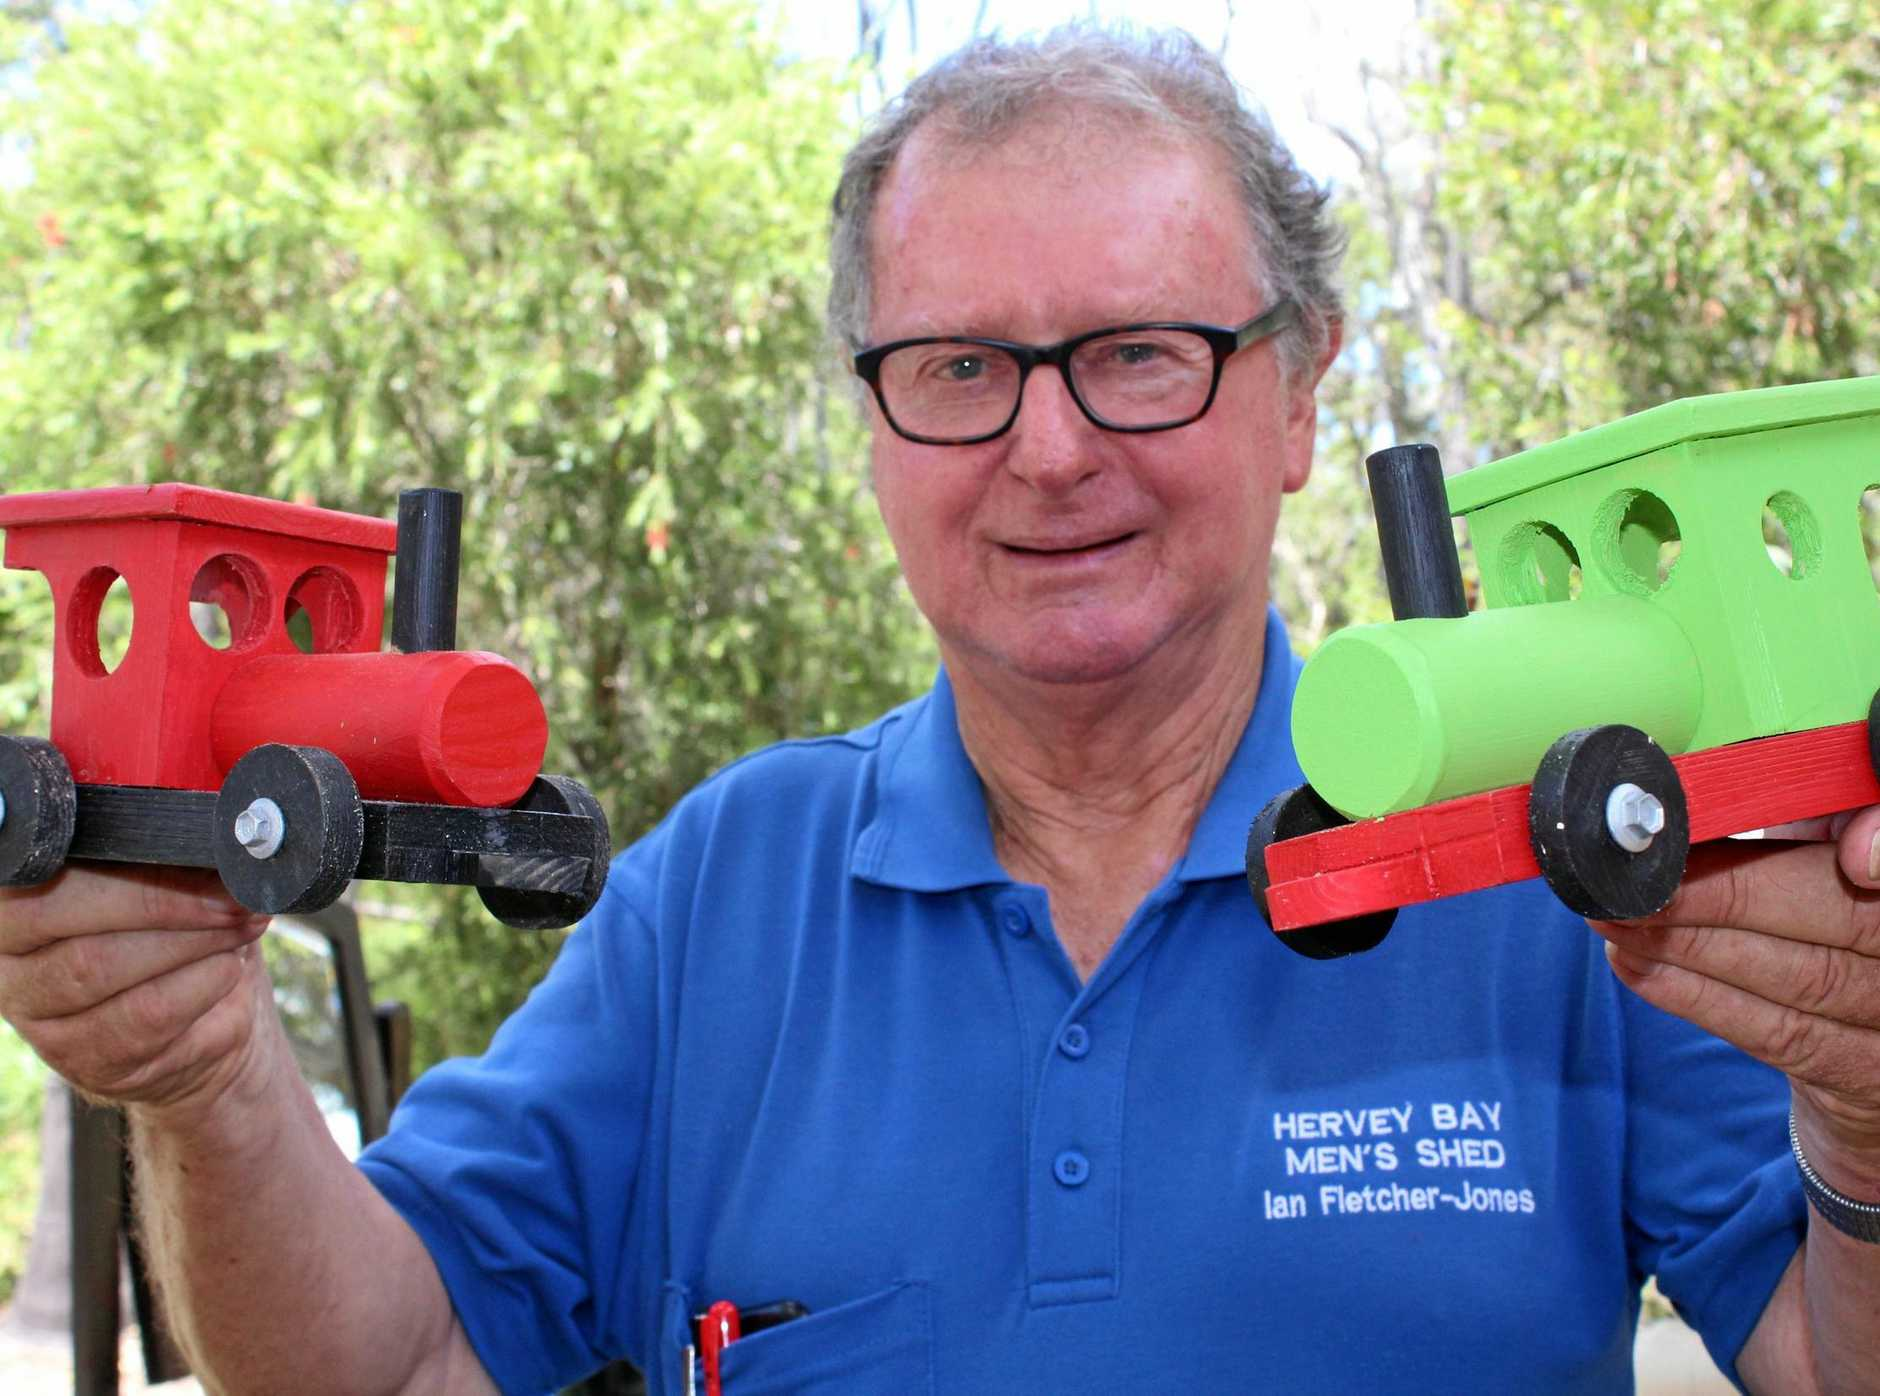 TOOT TOOT: Hervey Bay Men's Shed president Ian Jones is hoping these super cute children's trains will entice baragin hunters to the group's garage sale this weekend.